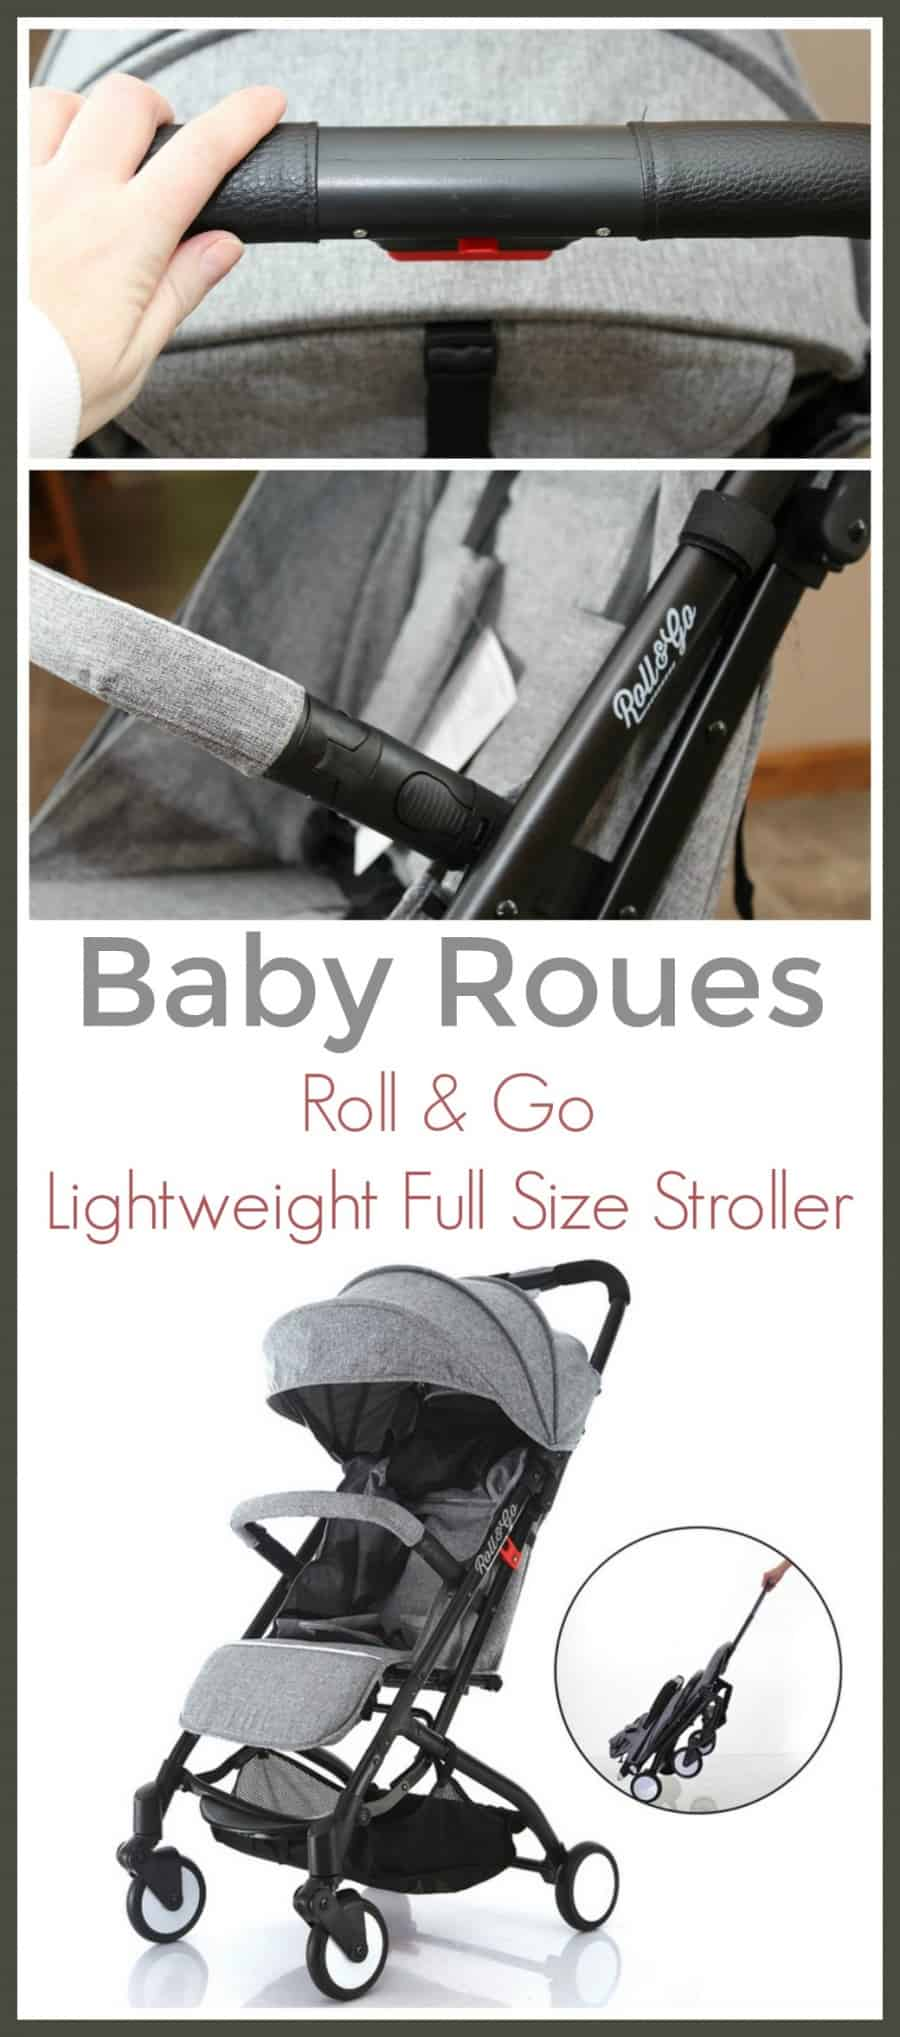 Baby Roues Roll & Go Lightweight Full Size Stroller Review